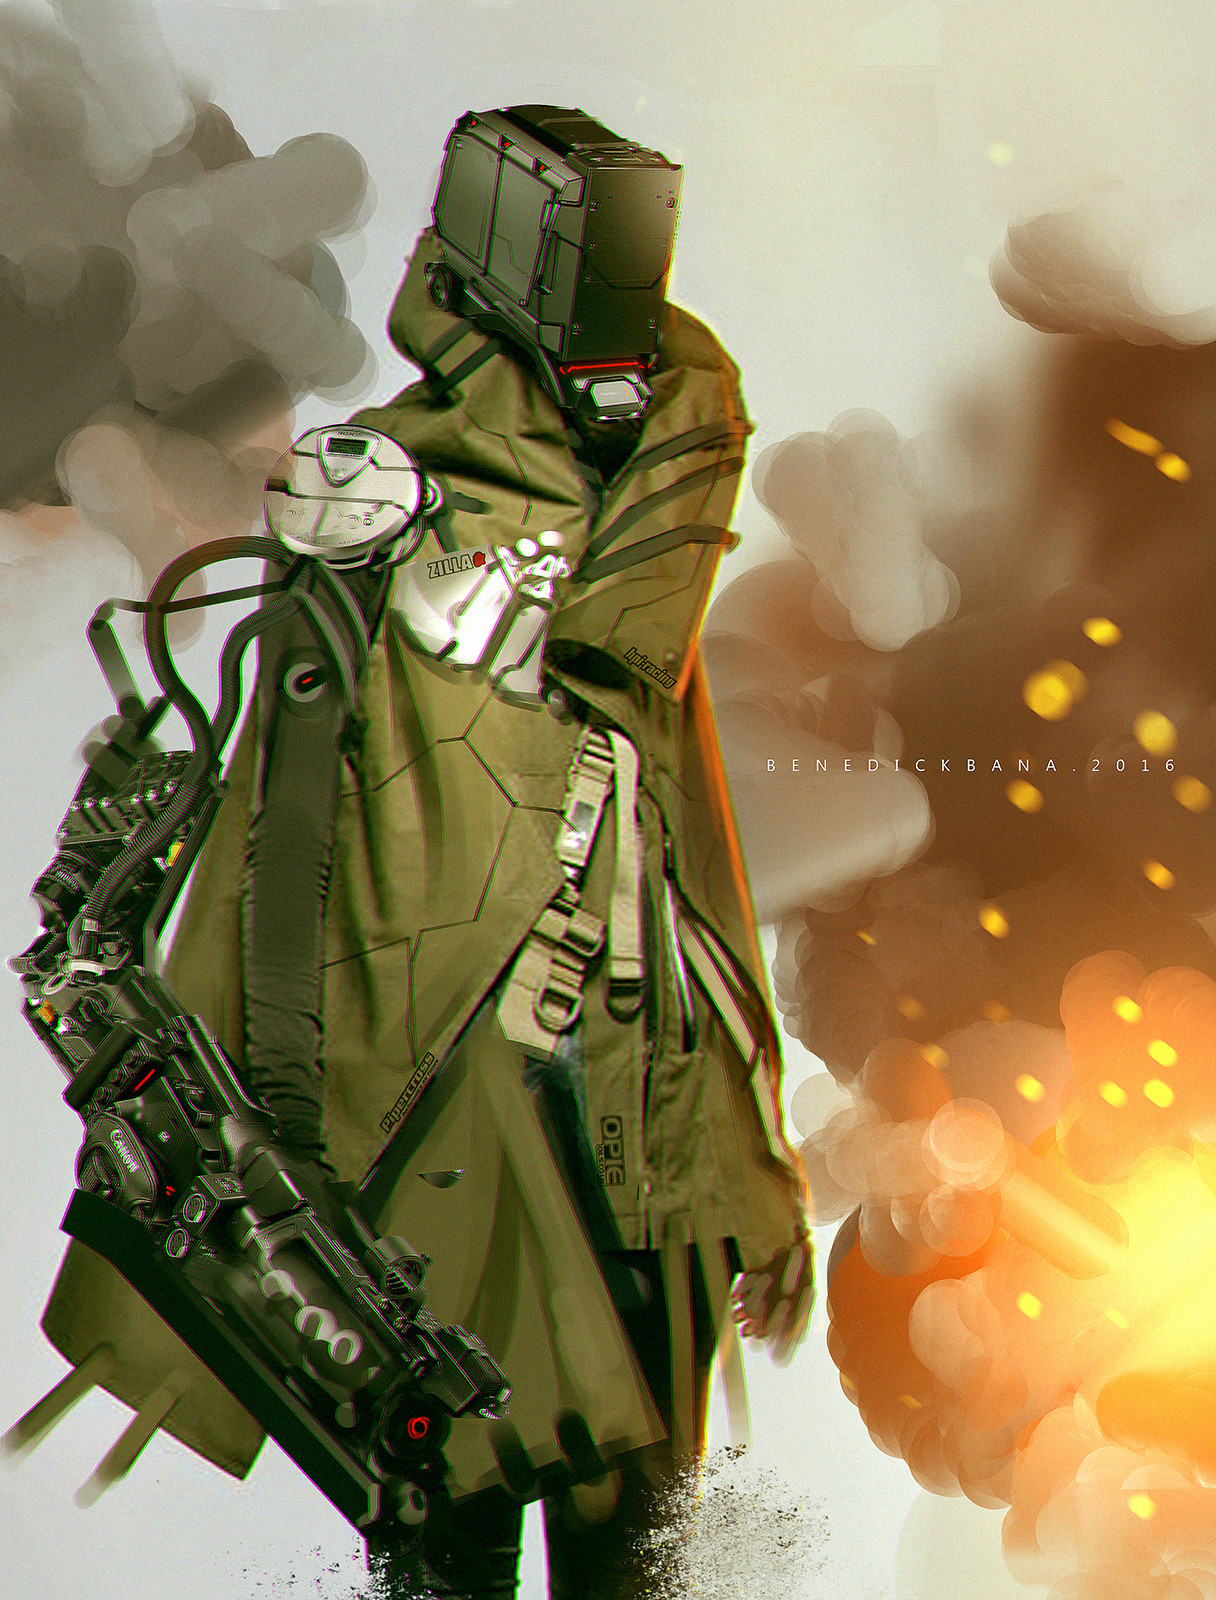 Benedick bana photobash 001 final lores